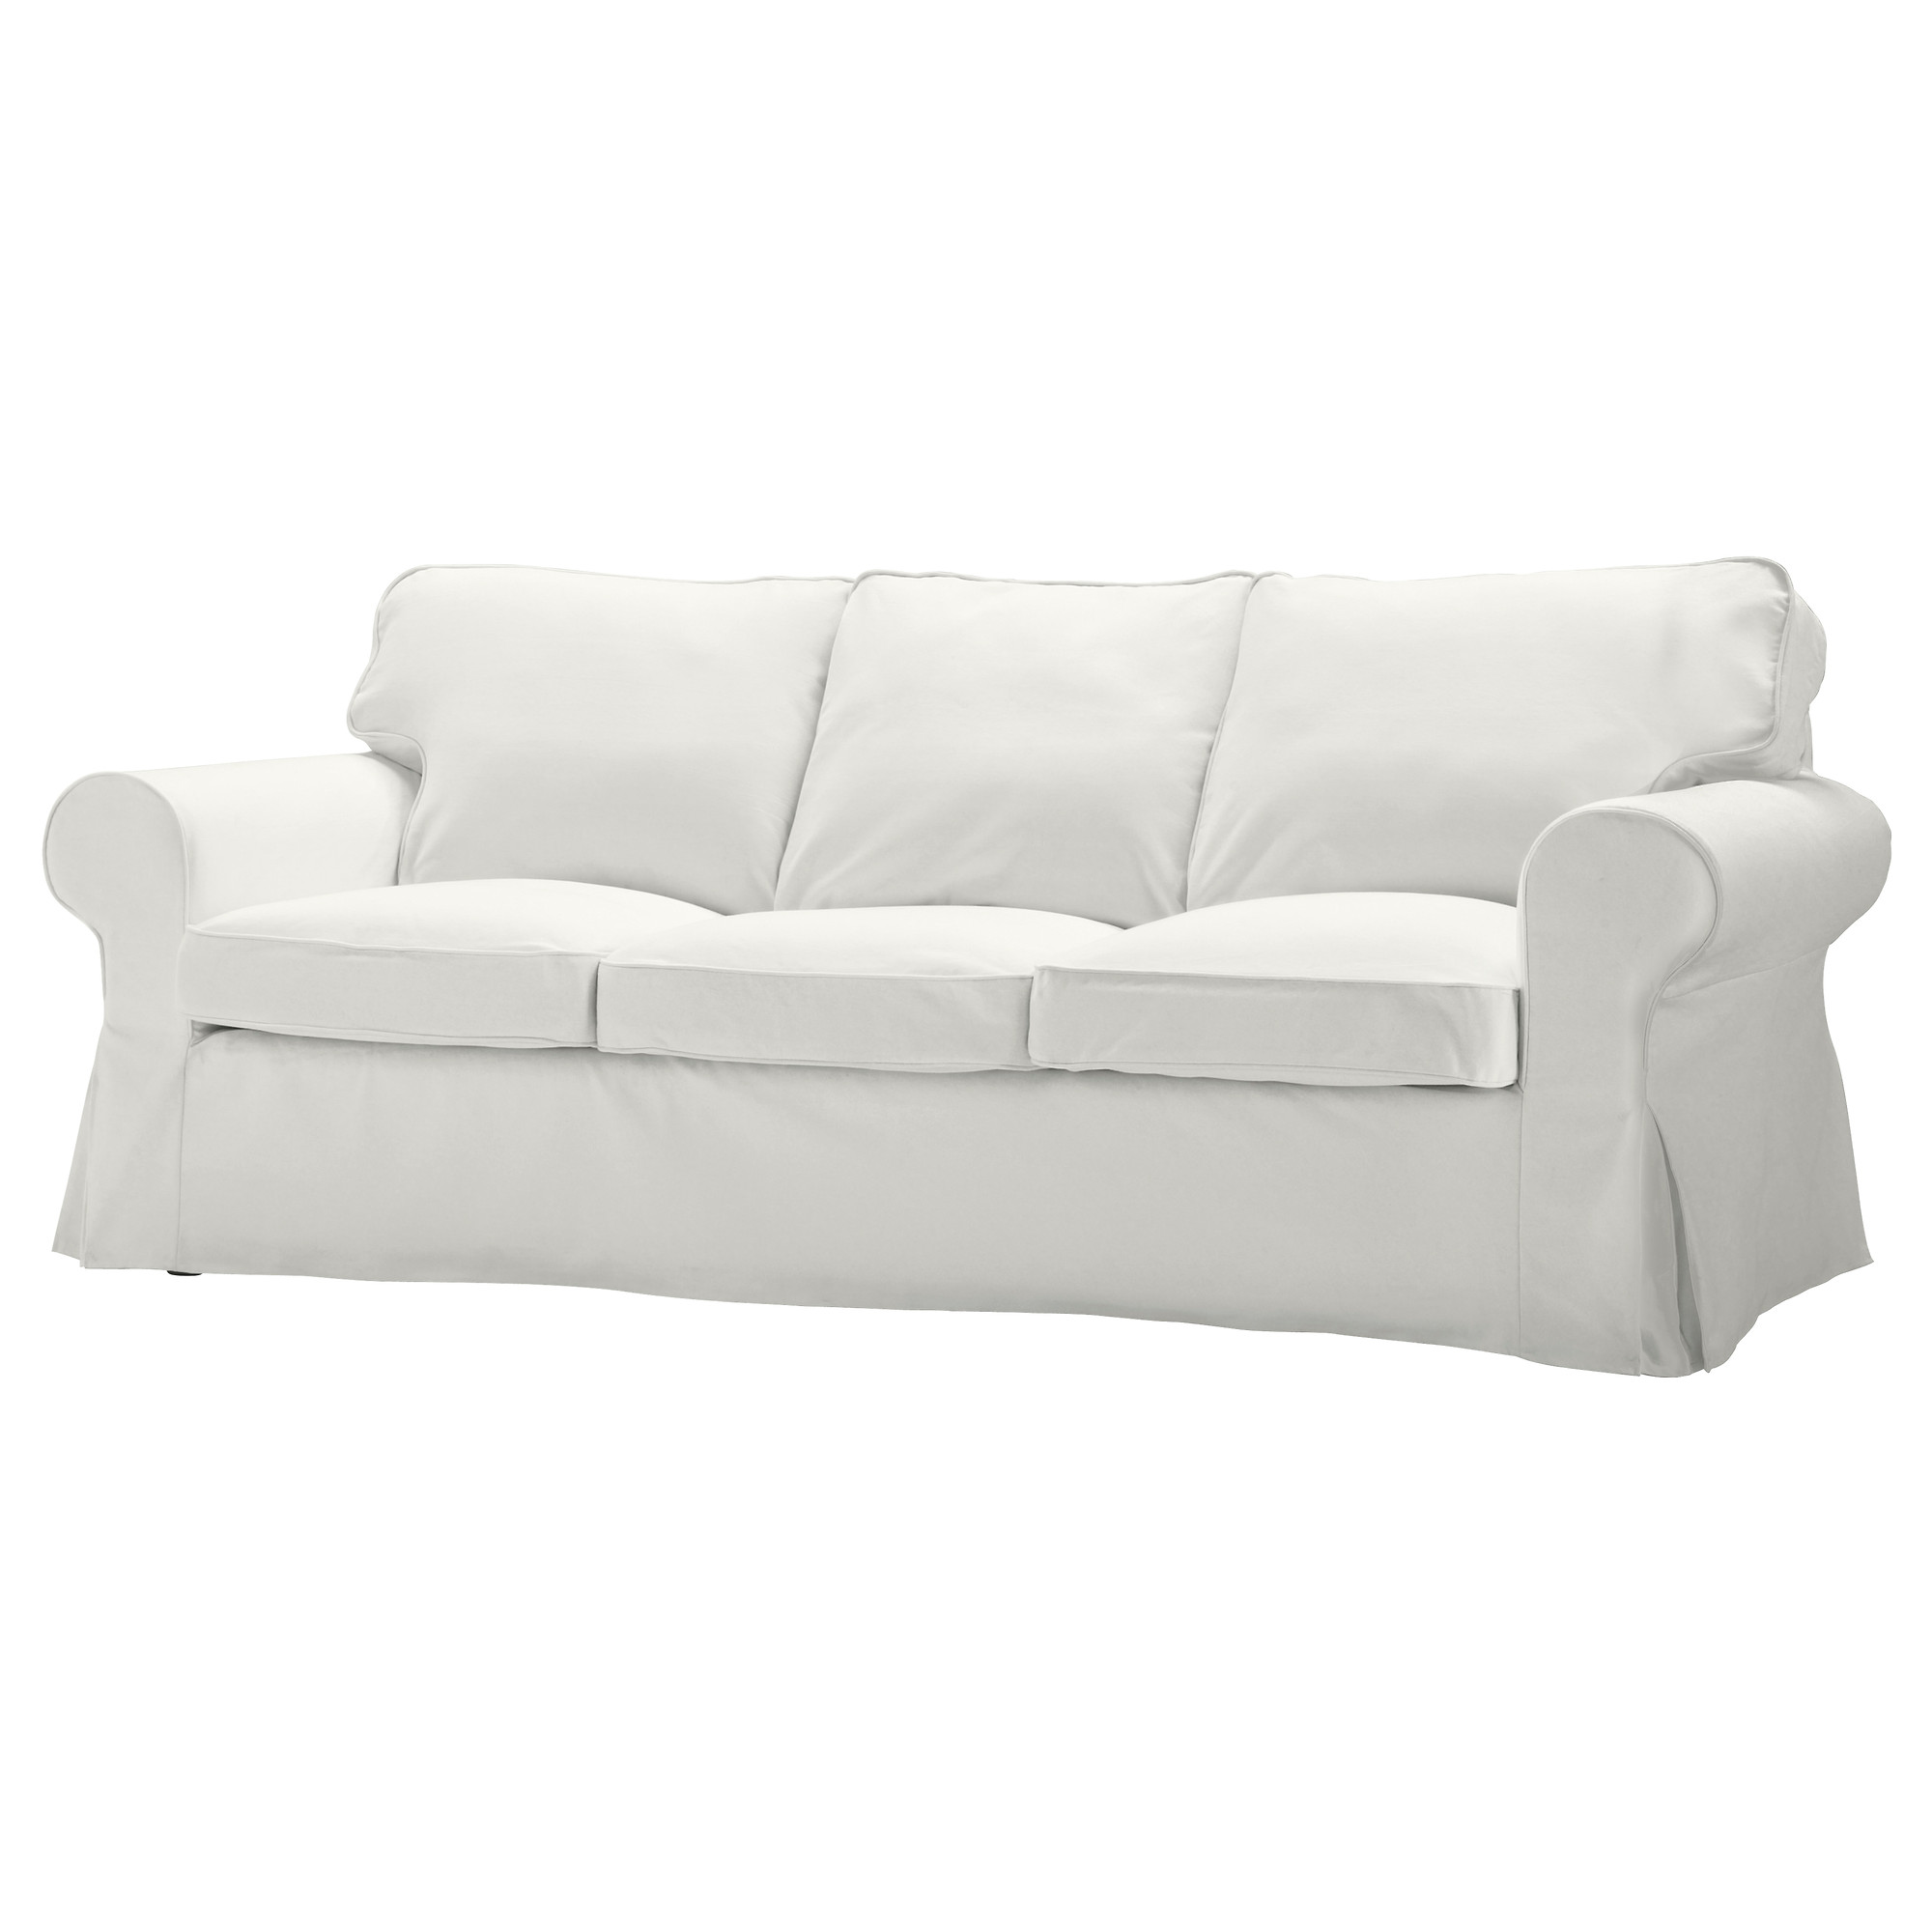 Rp Three Seat Sofa Blekinge White Ikea